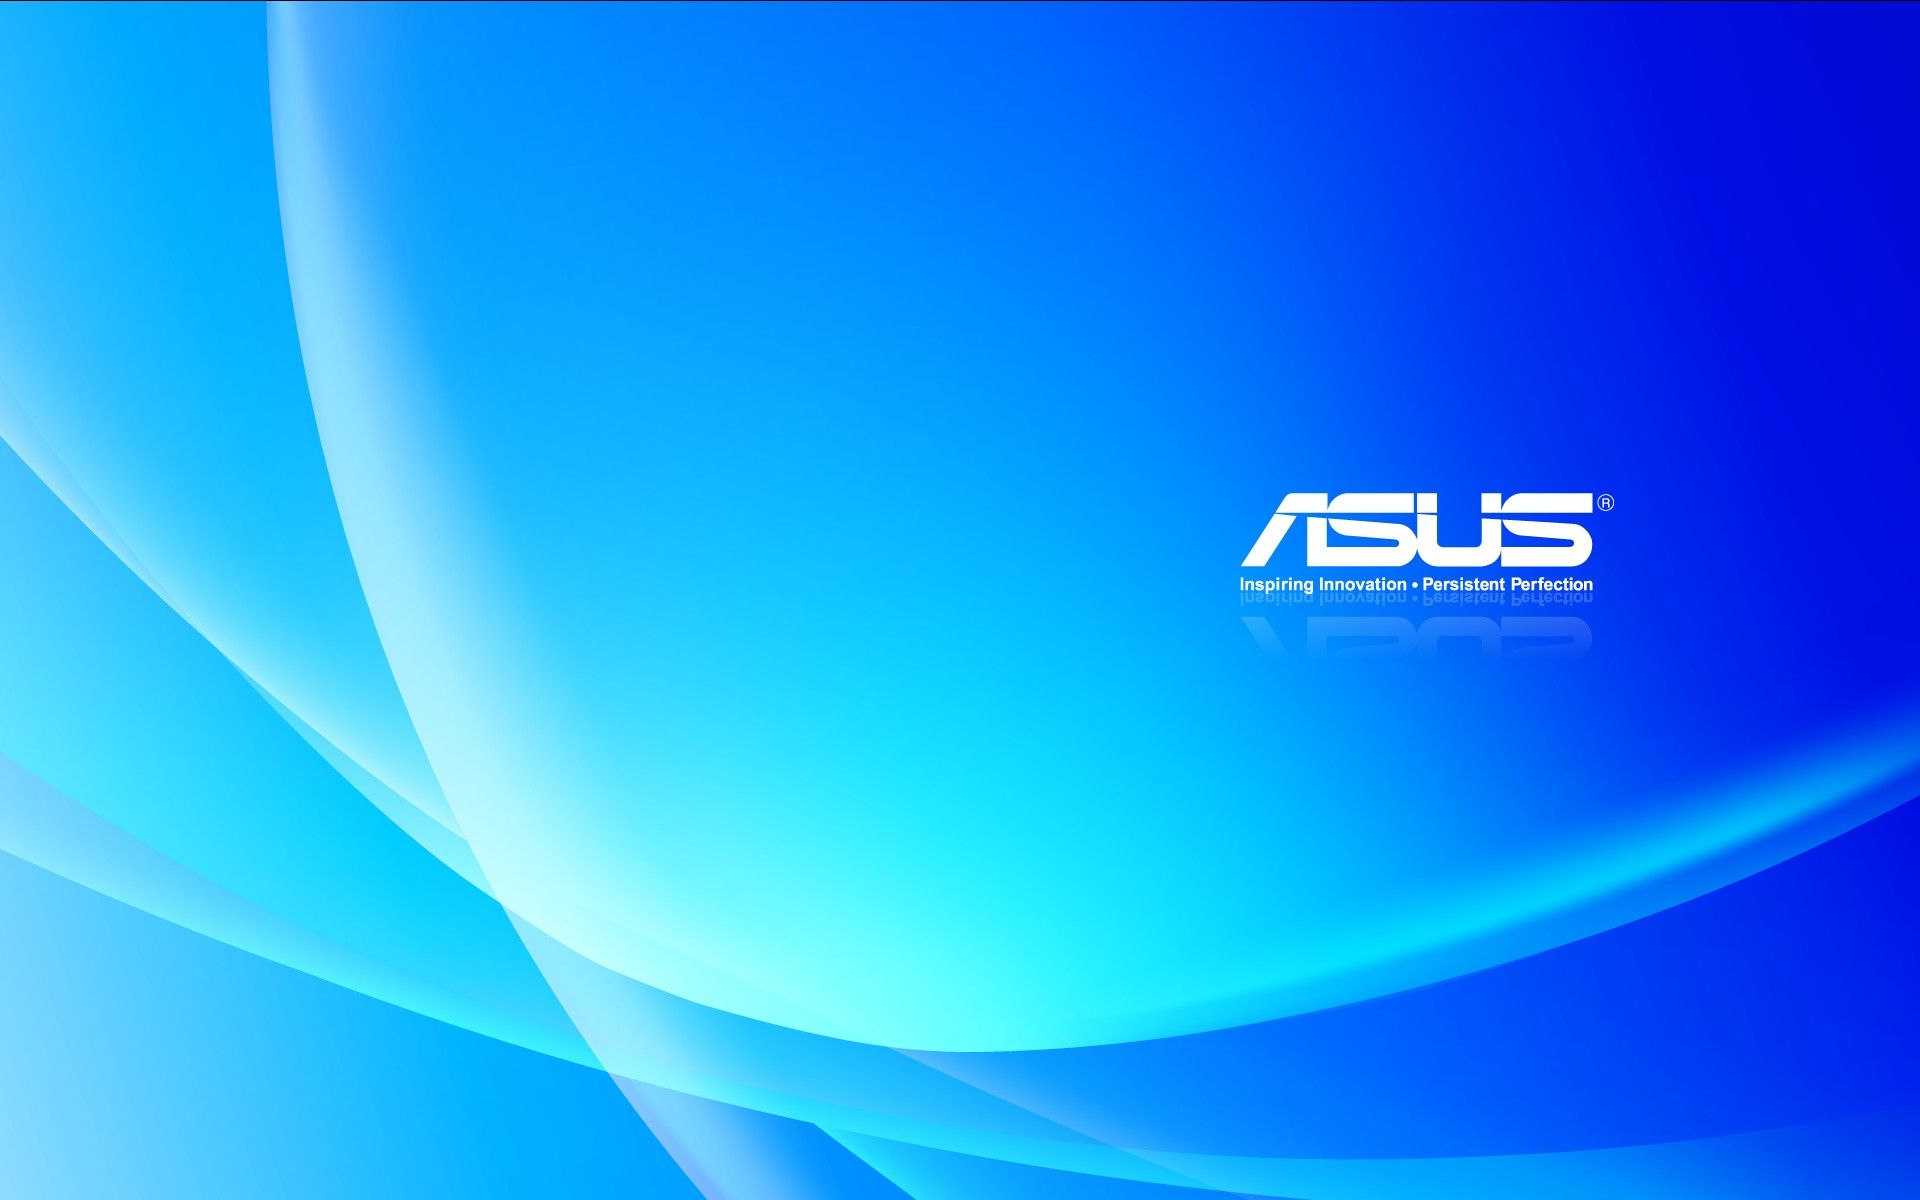 asus desktop wallpaper - sf wallpaper